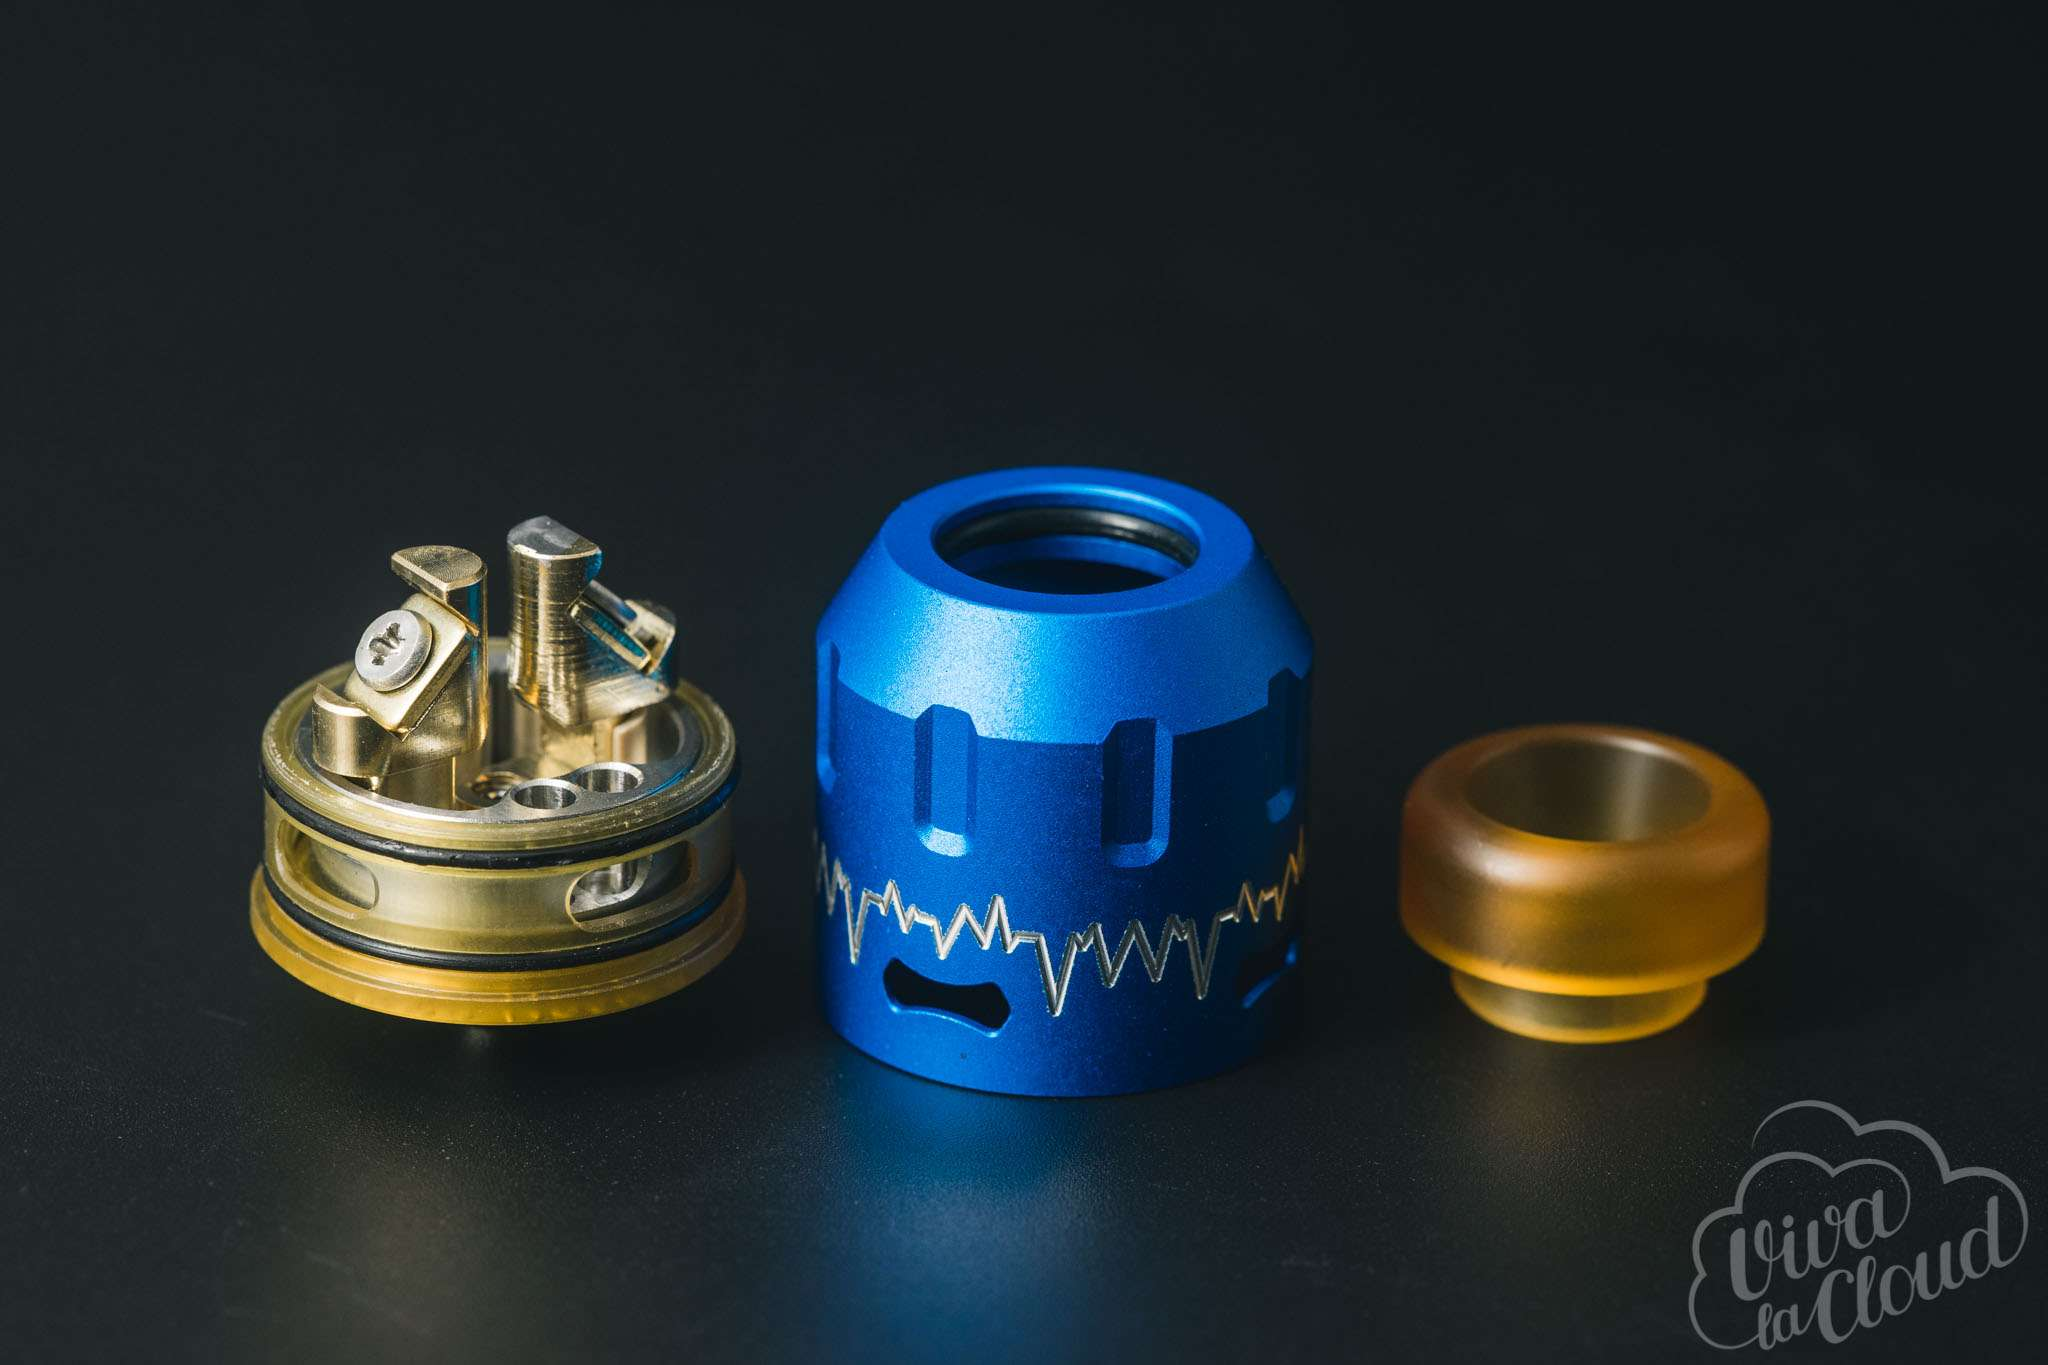 STEELVAPE ECG BOTTOM FEEDER RDA